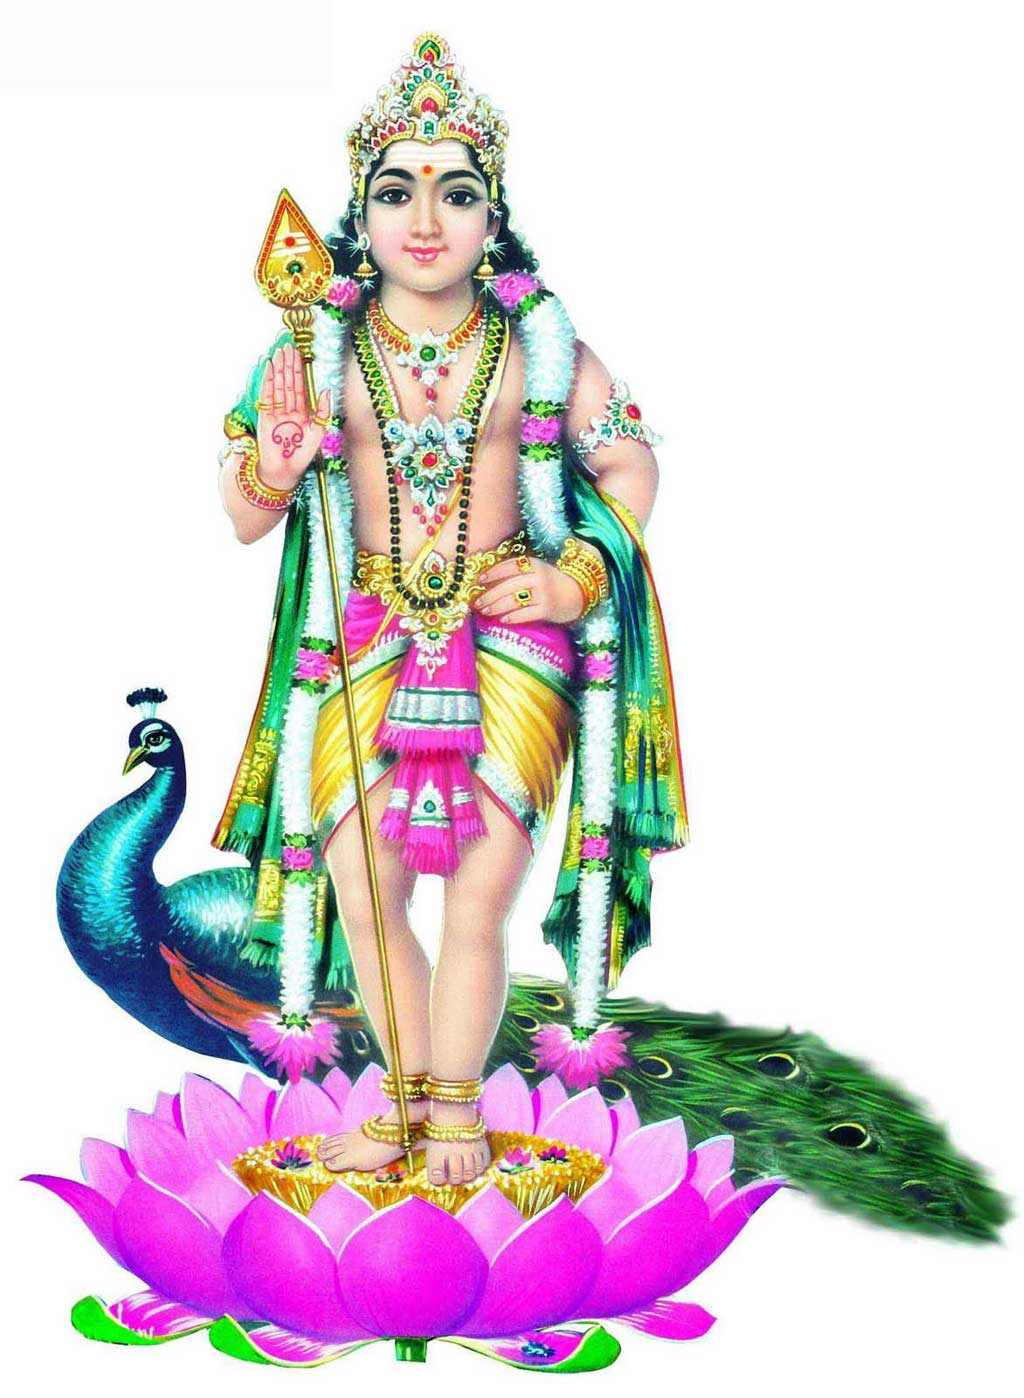 GODS CLIPARTS AND IMAGES: LORD MURUGA - Lord Murugan PNG